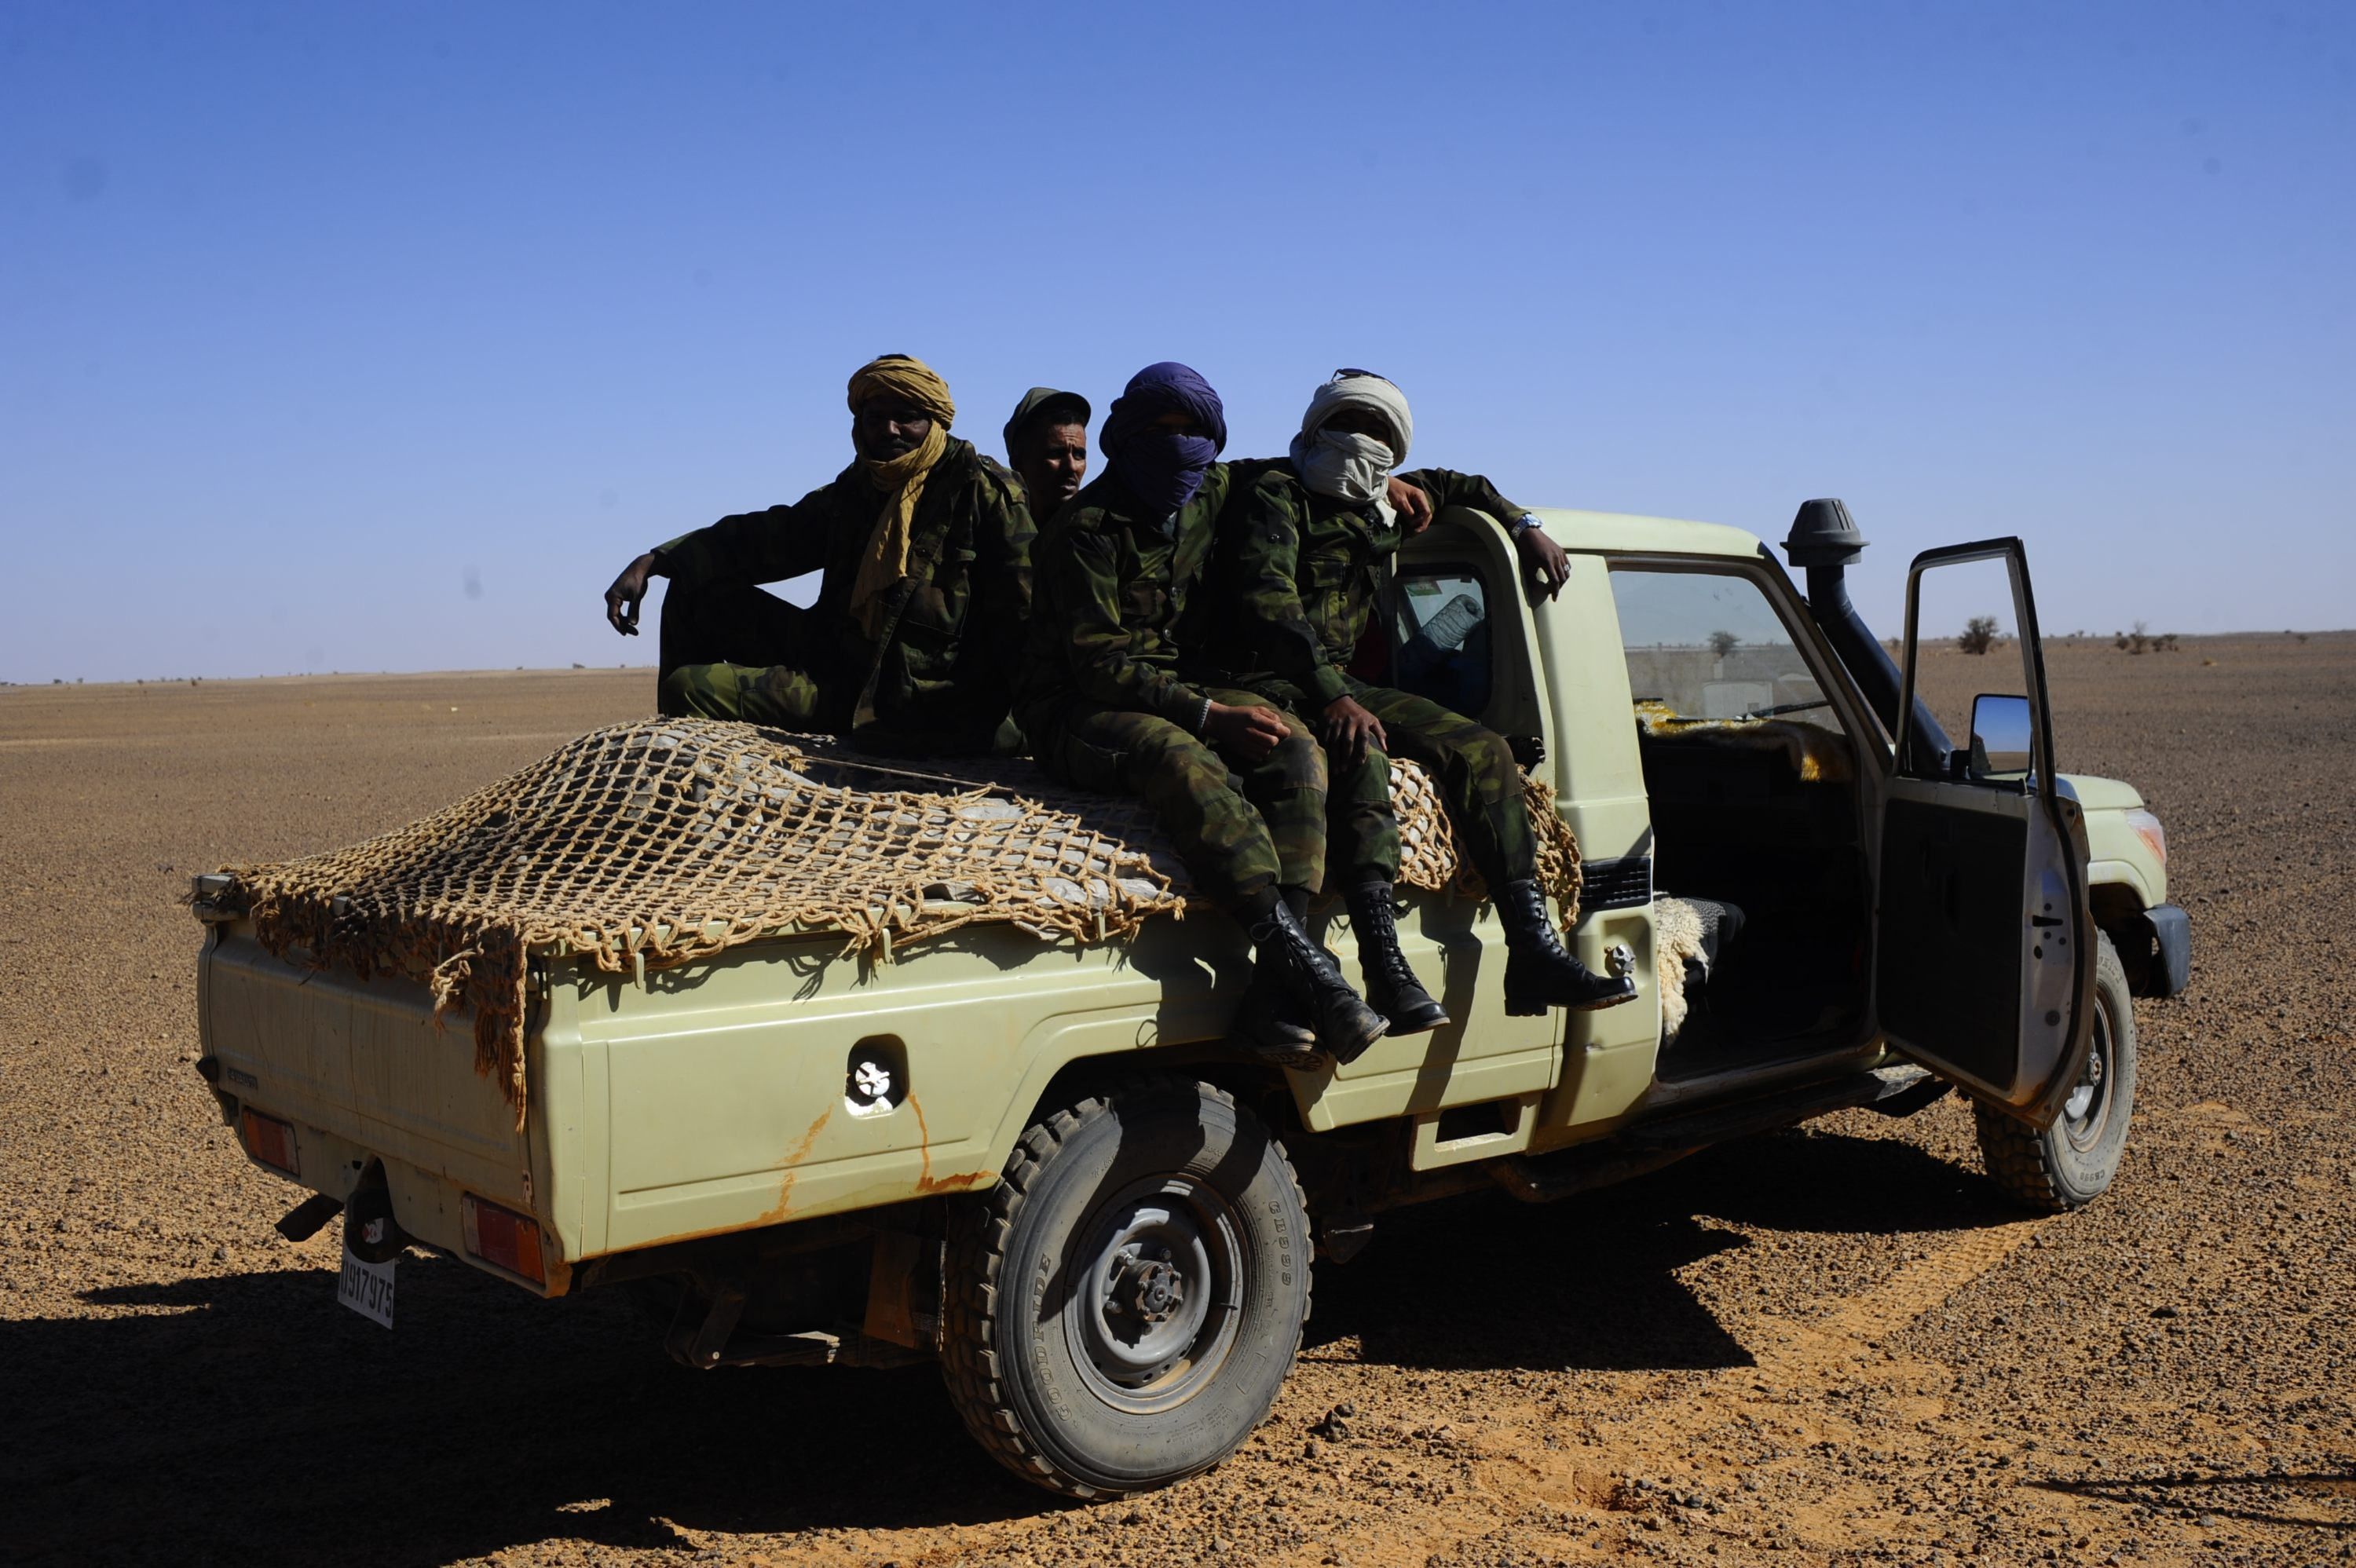 Members of the Polisario sit on a pick-up truck in the Western Sahara in 2014 (MEE/Oscar Rickett)